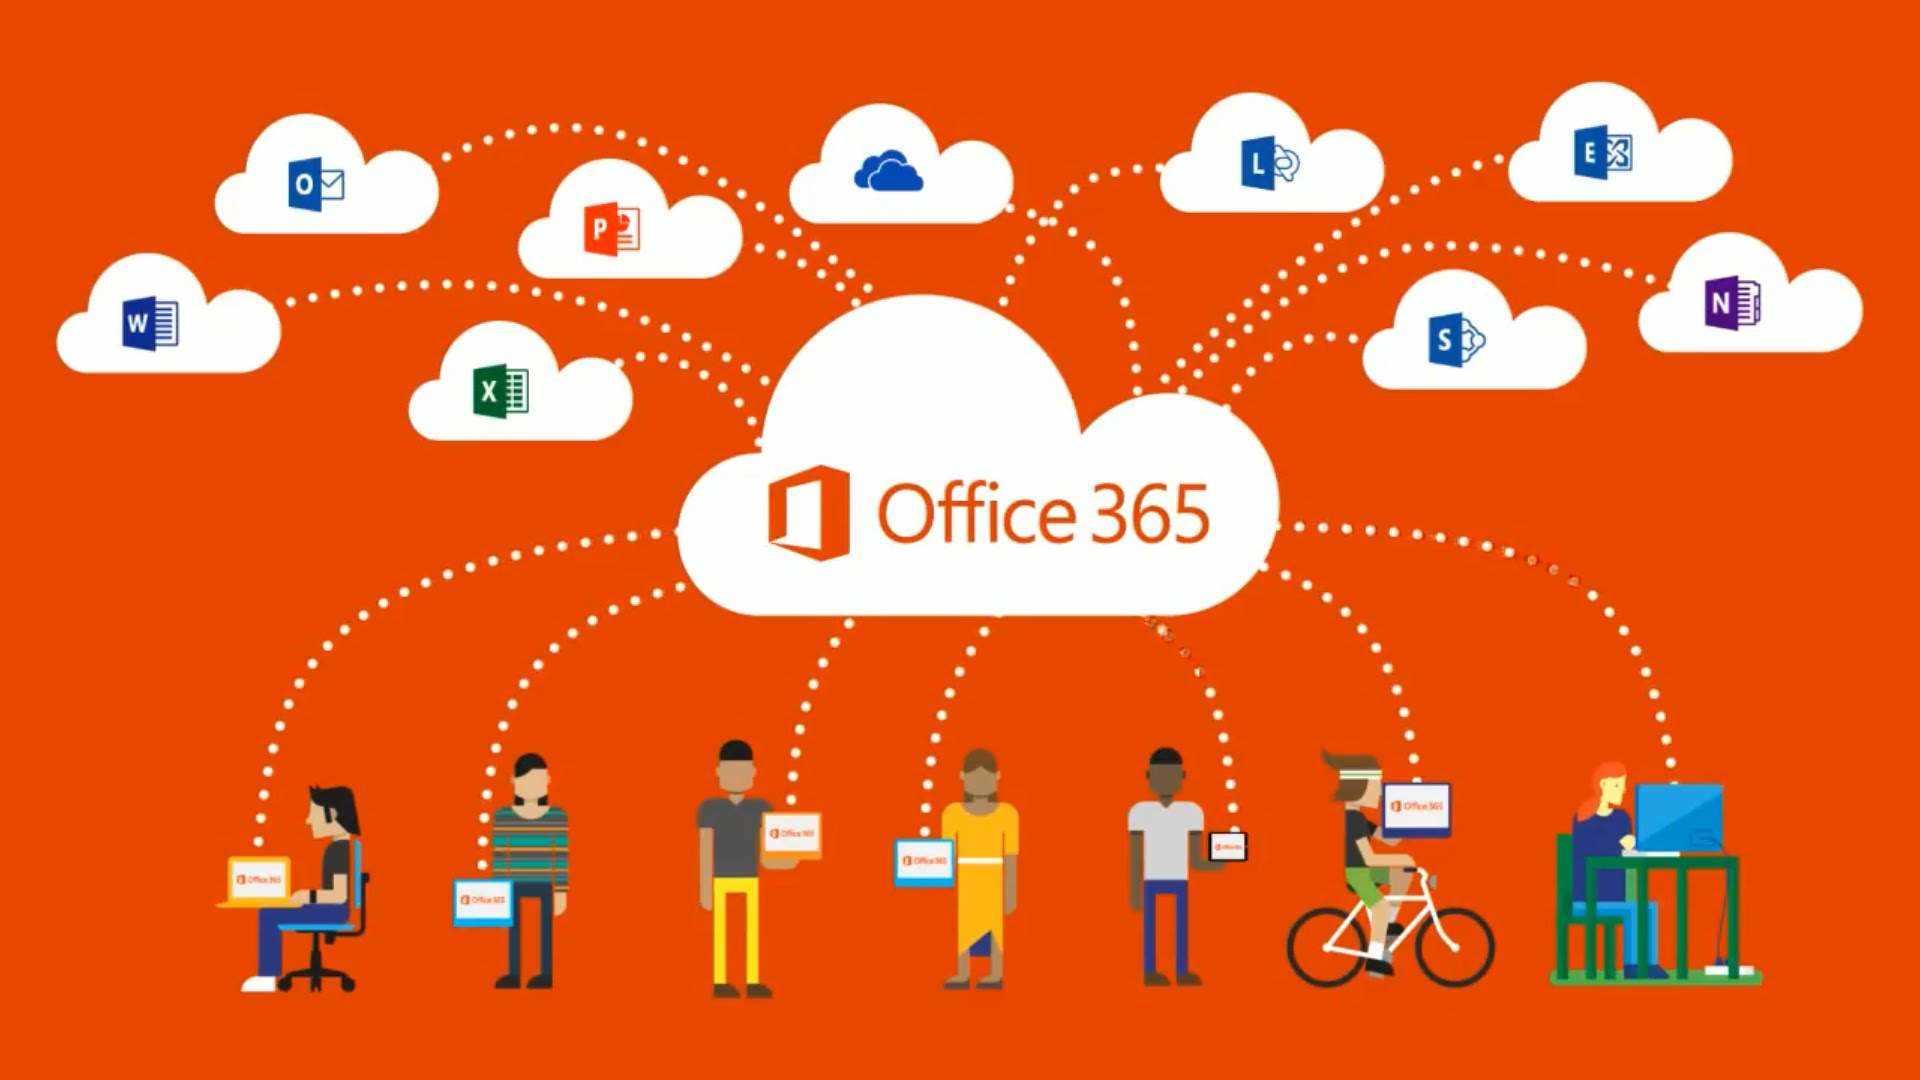 Office 365 put focus on the cloud